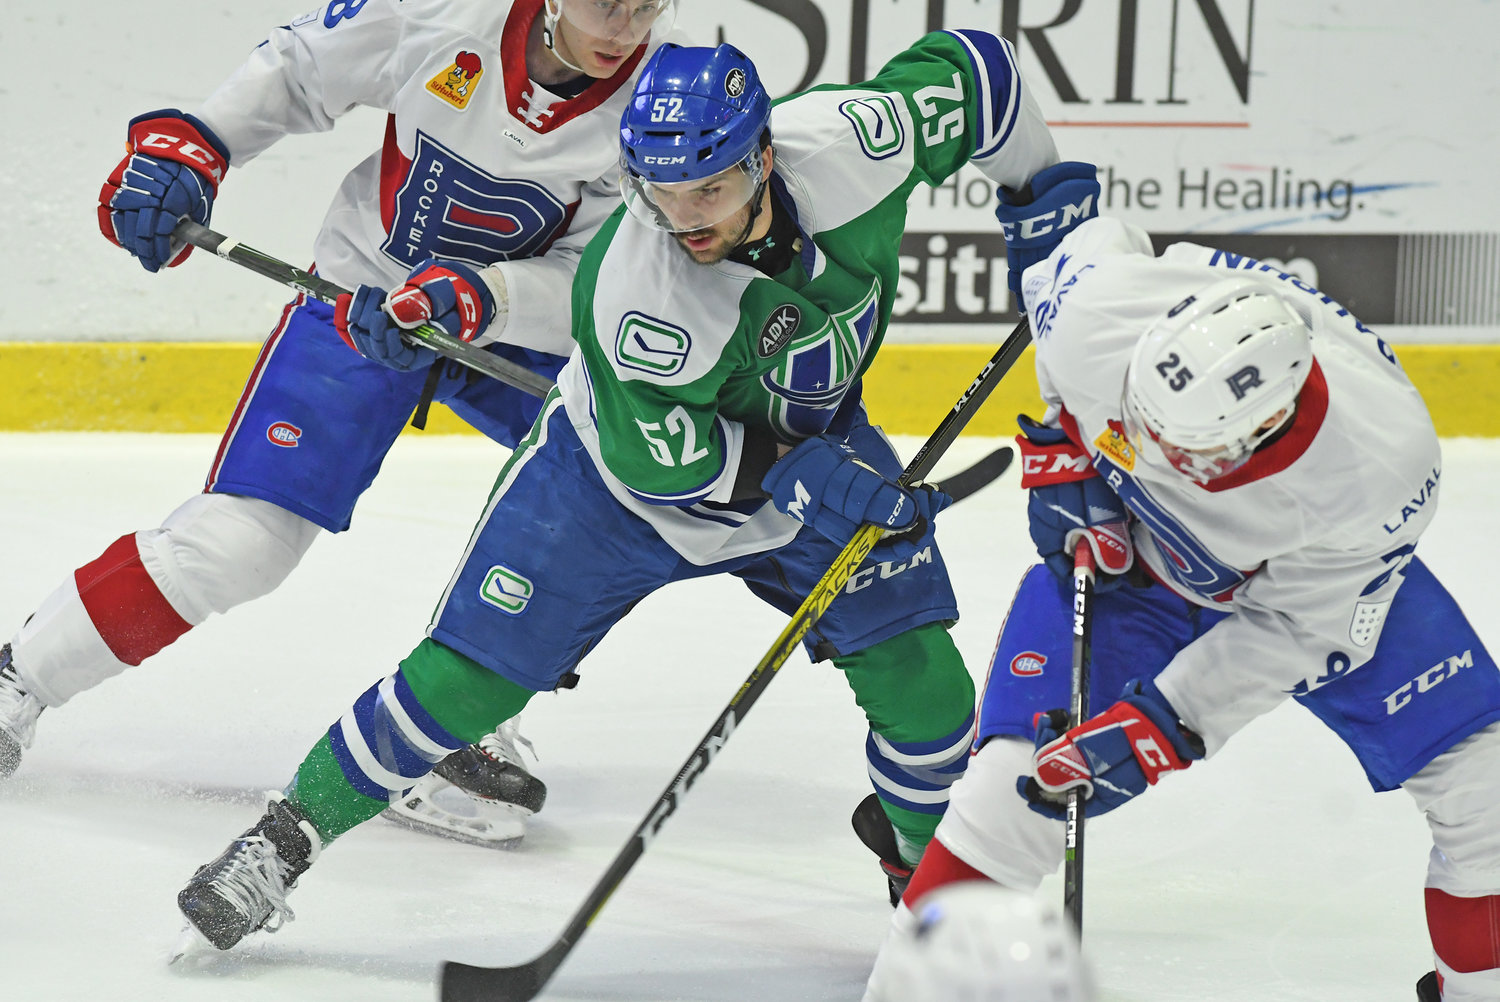 Comets #52 sandwiched by Laval #38 and #25.